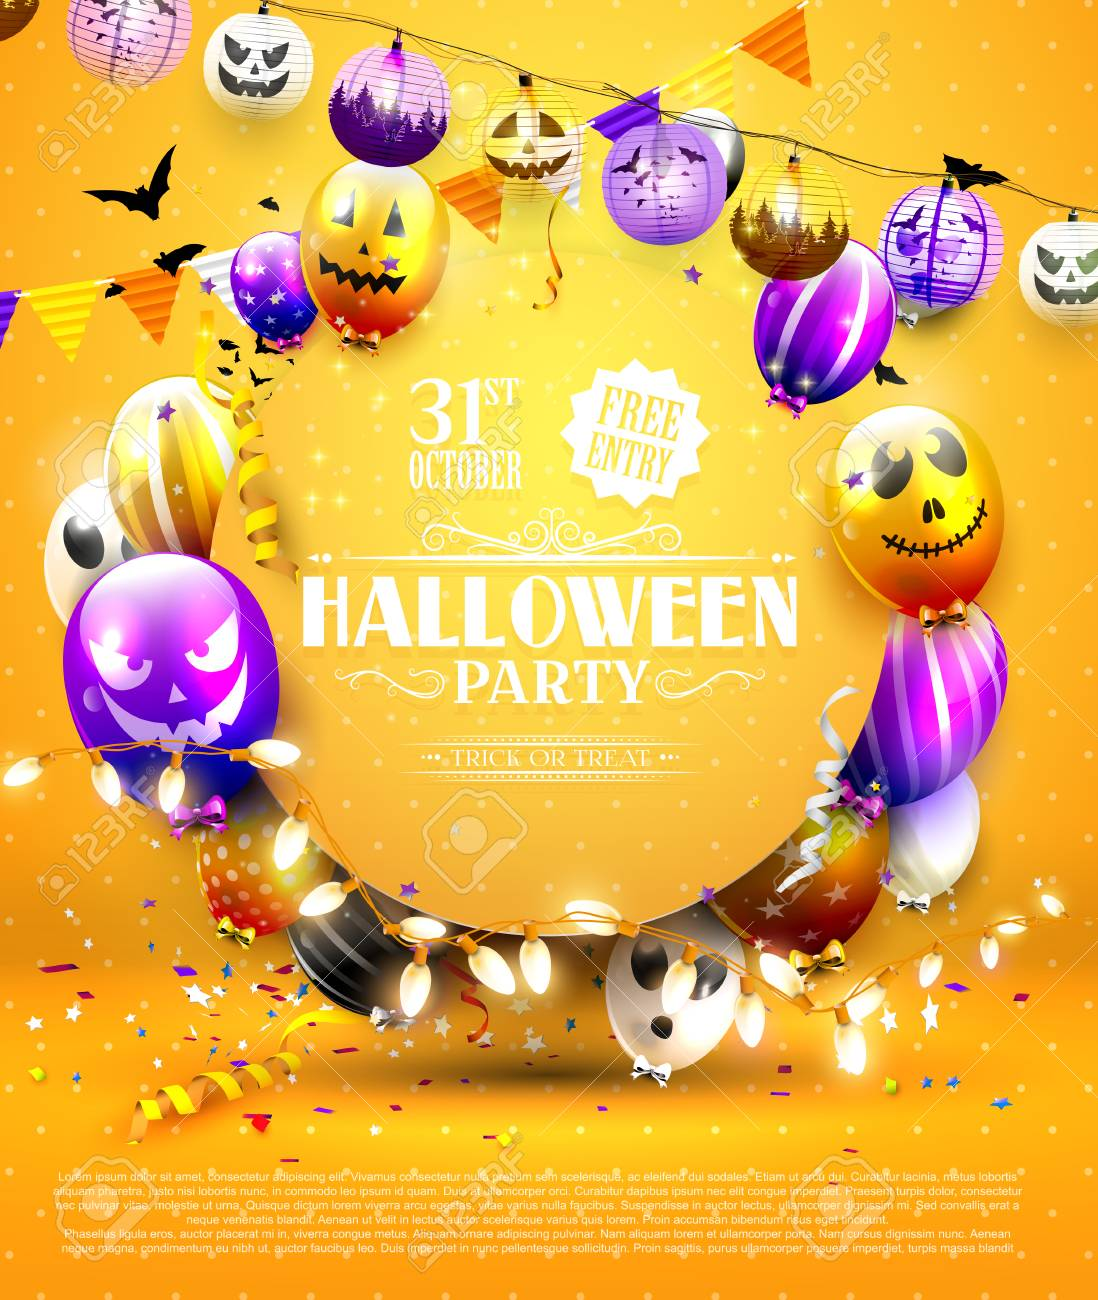 halloween party template with colorful balloons with scary faces